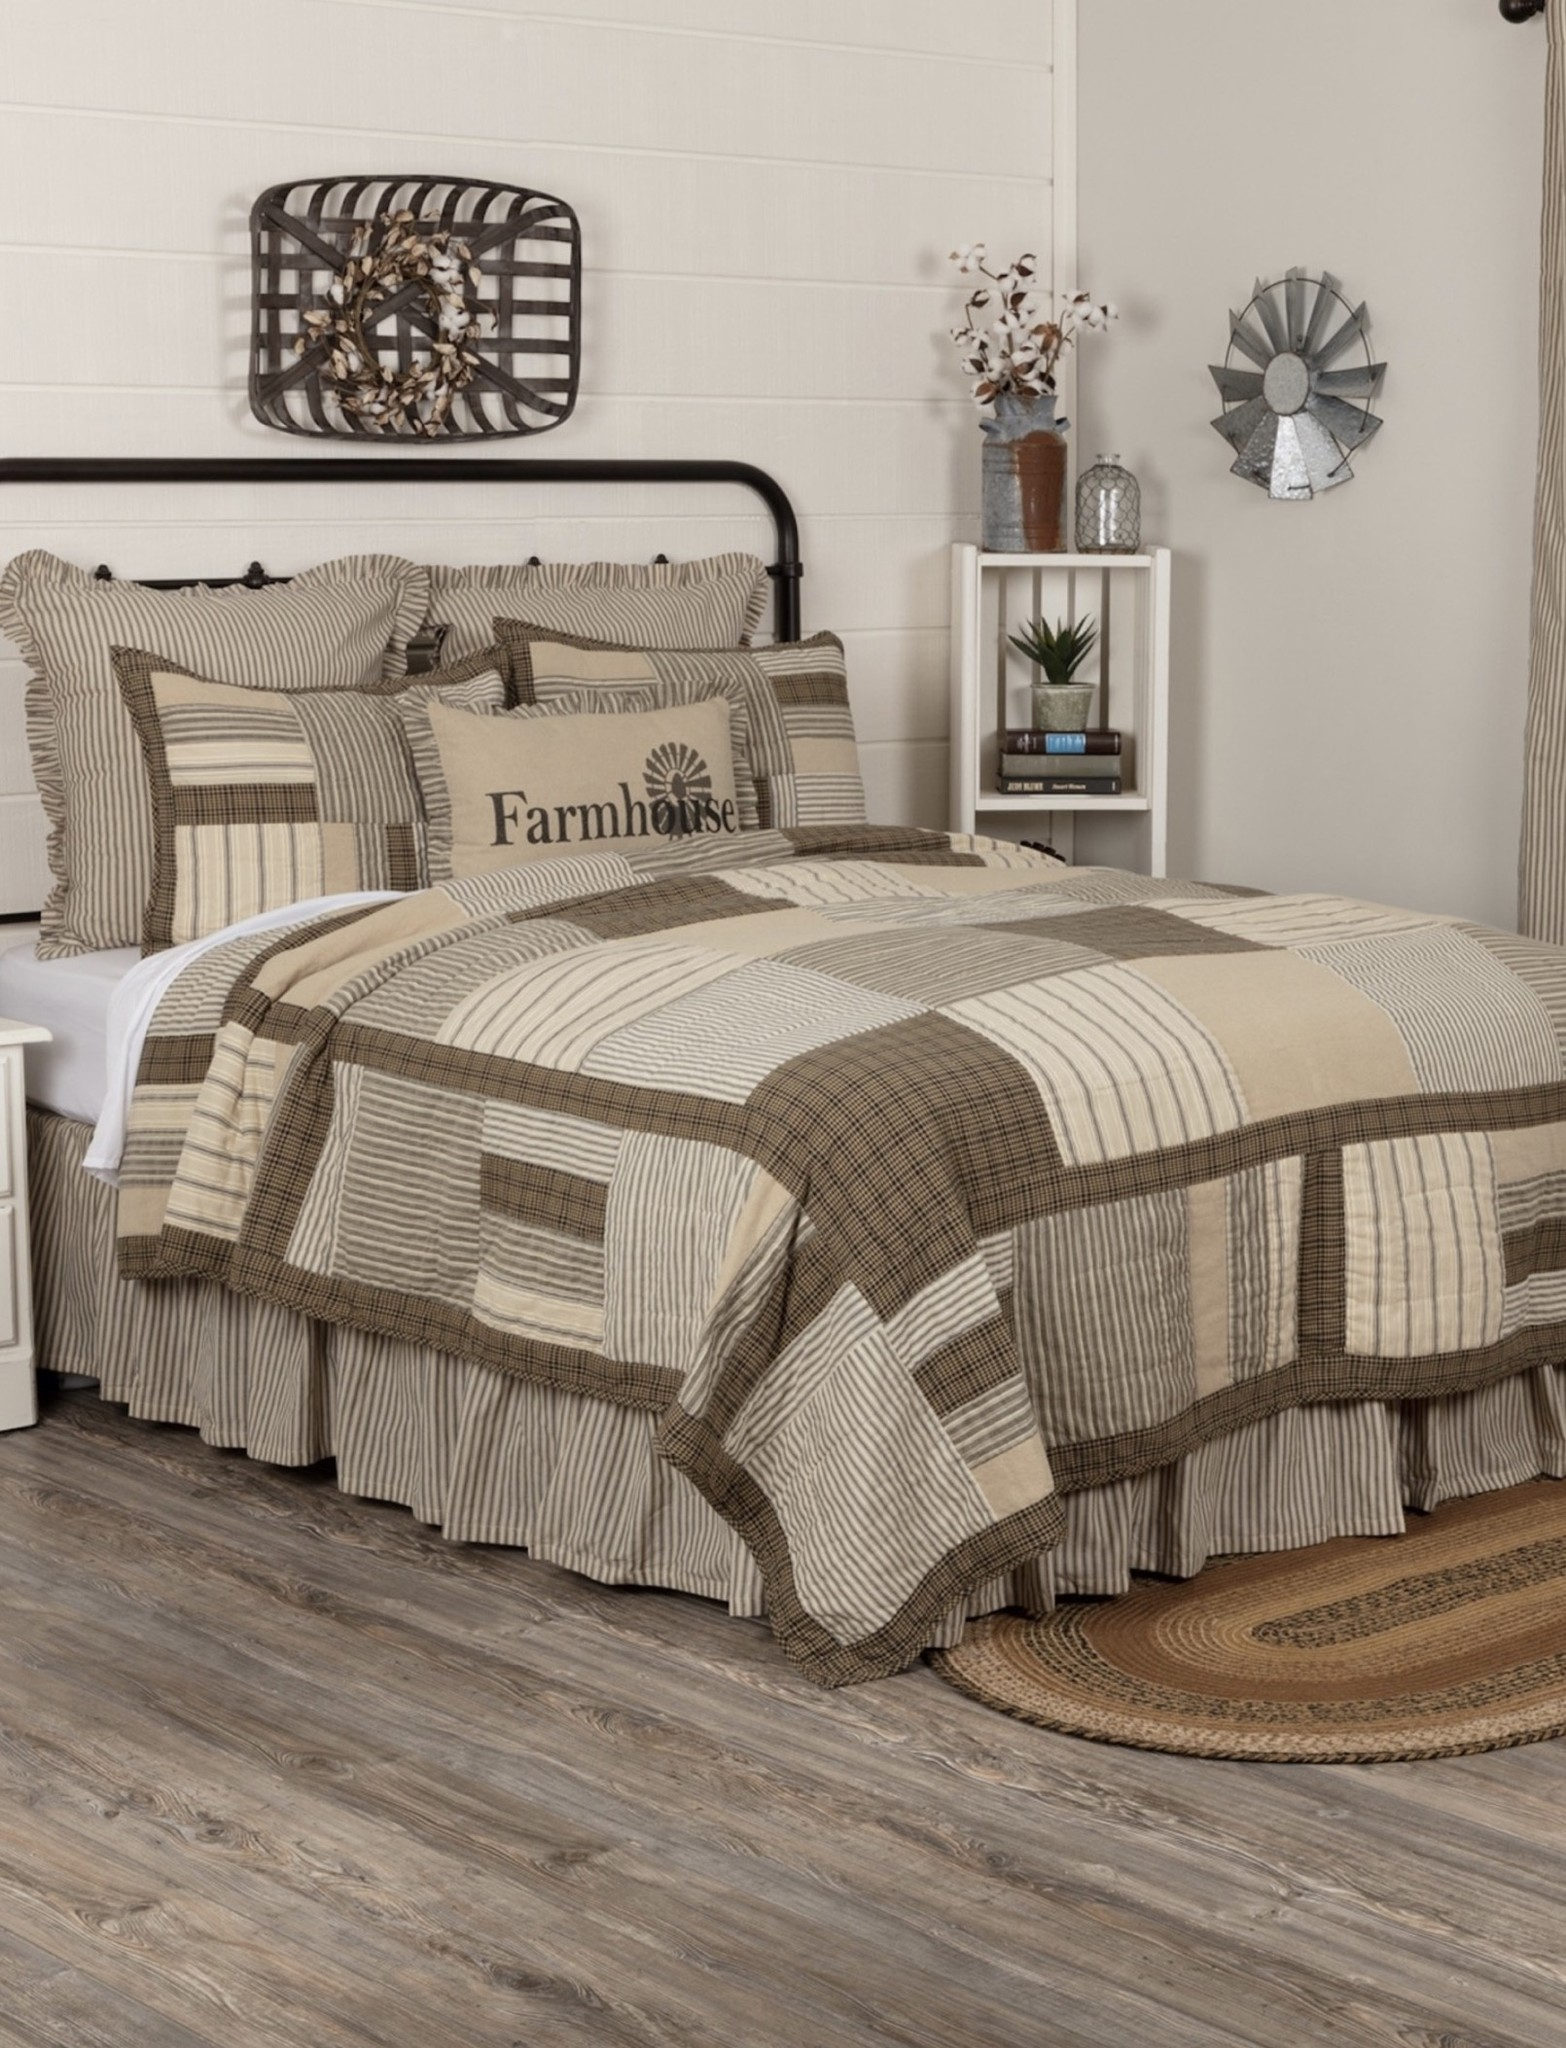 Nana's Farmhouse Sawyer Mill Home King Quilt Set